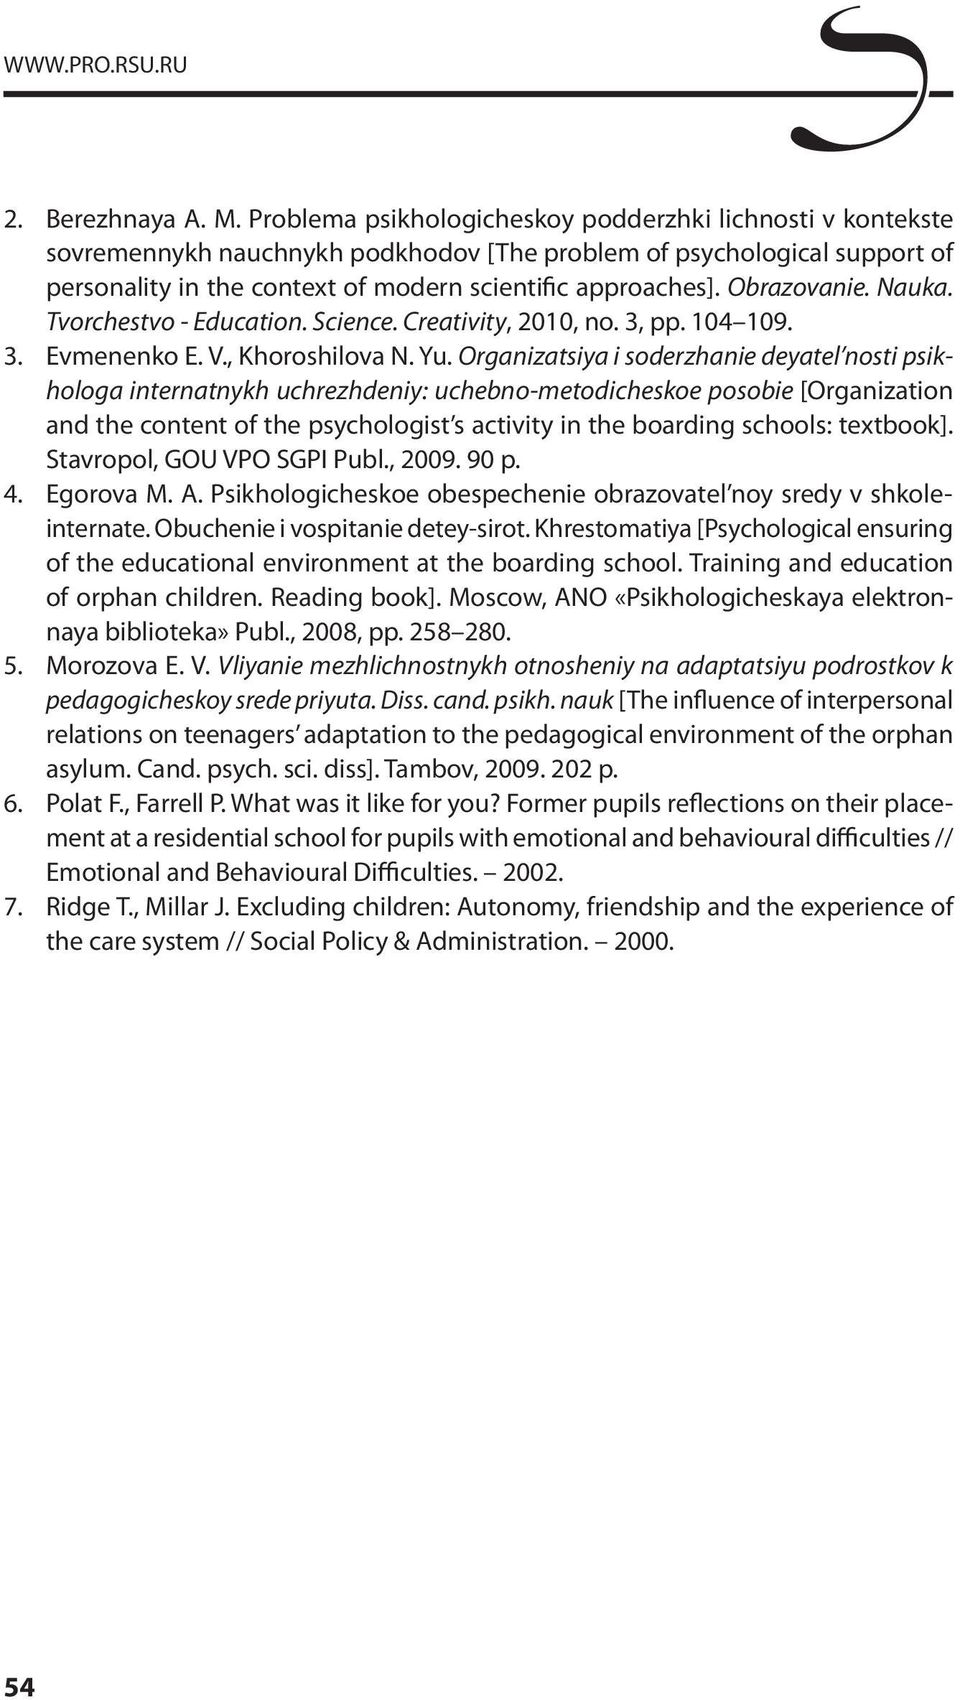 Obrazovanie. Nauka. Tvorchestvo - Education. Science. Creativity, 2010, no. 3, pp. 104 109. 3. Evmenenko E. V., Khoroshilova N. Yu.